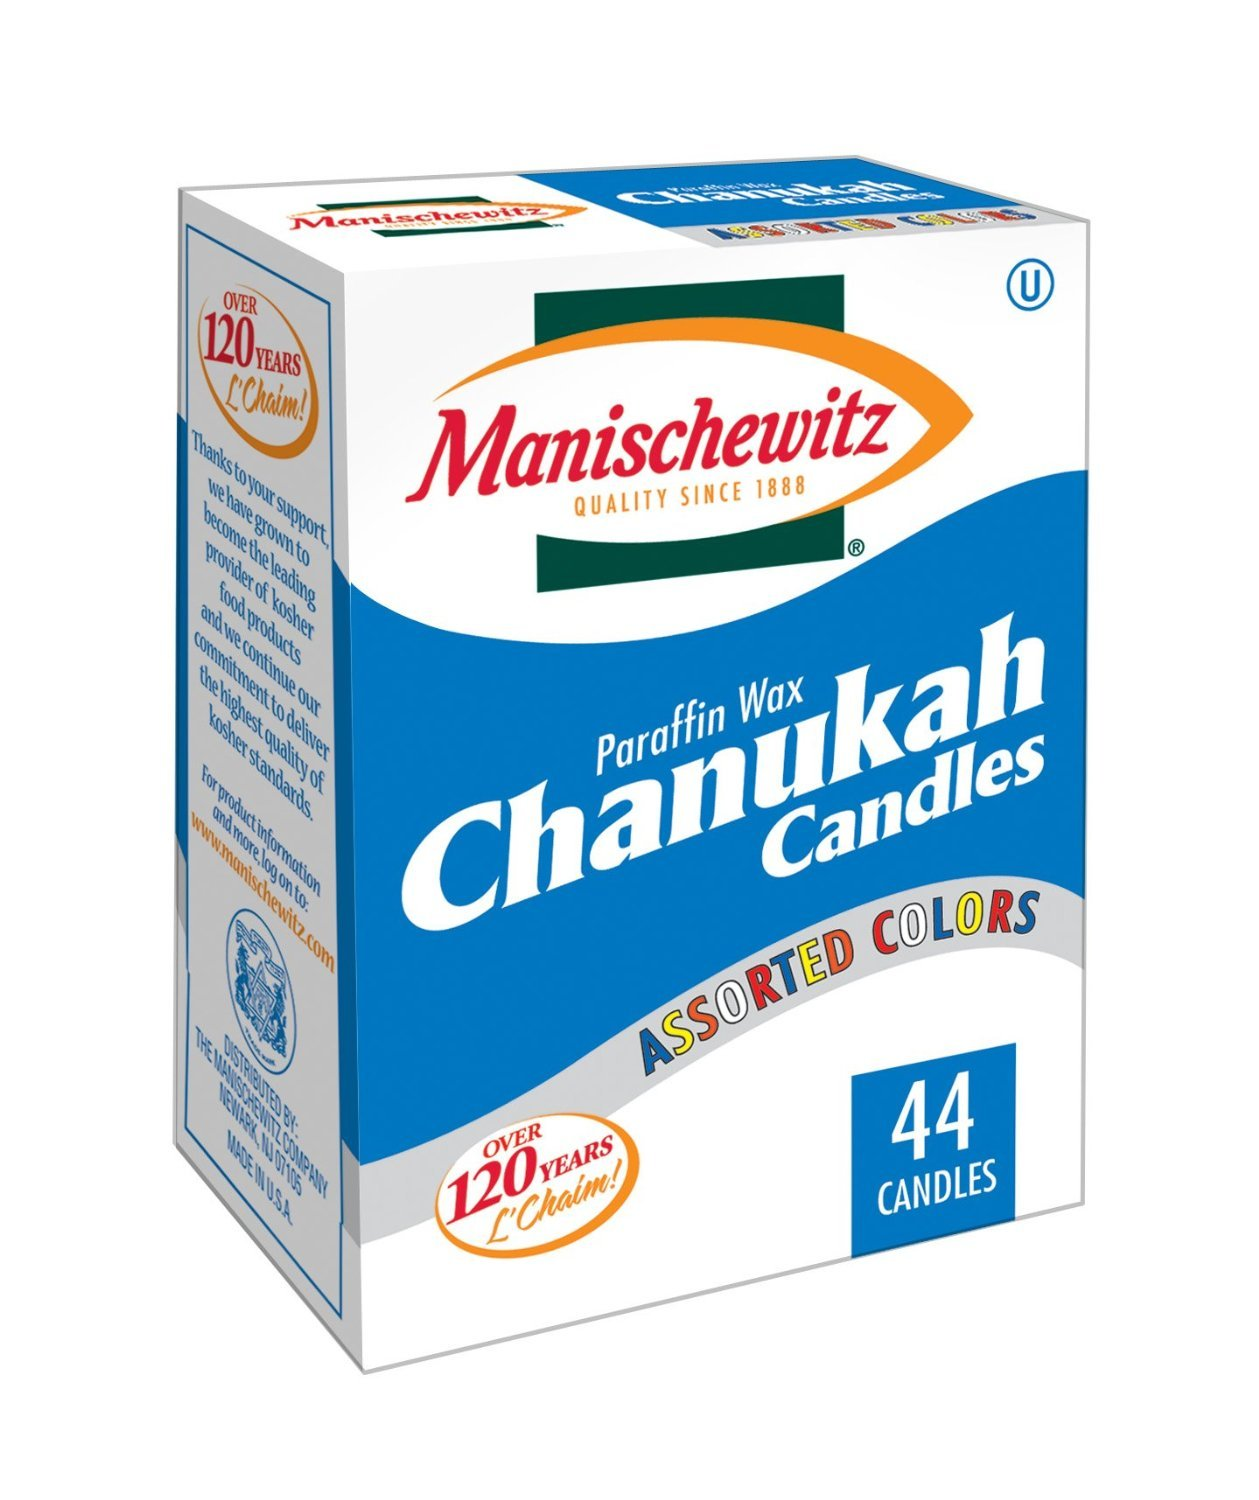 Manischewitz Chanukah Candles Colorful - 44 Ct (Pack of 6)